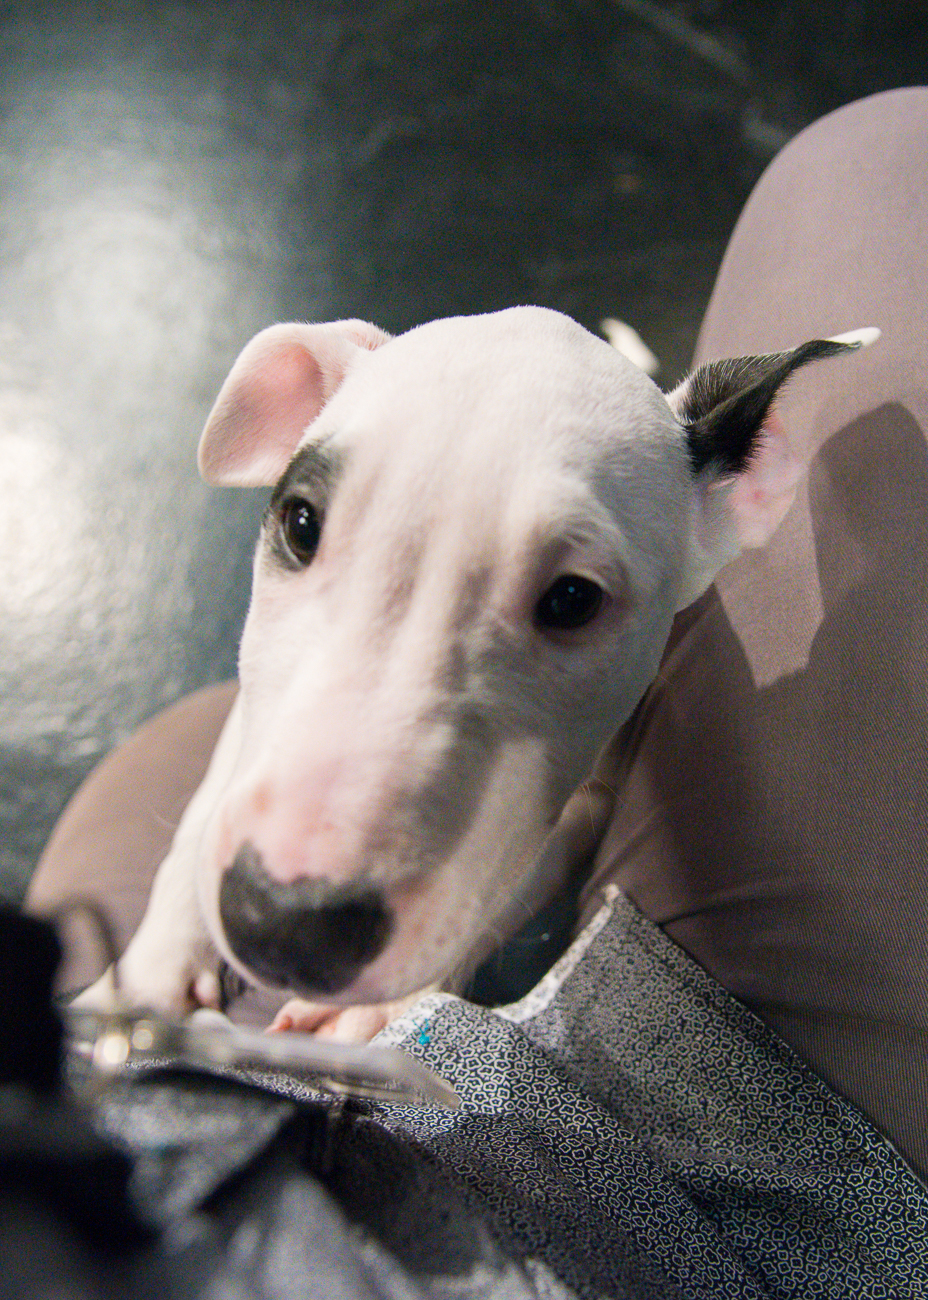 PICTURED: Joy, a 3-month-old bull terrier puppy / ABOUT: The Society for the Prevention of Cruelty to Animals (SPCA) is an organization that seeks out new, loving owners for adoptable, adorable dogs and cats. While the pets in these photos are likely already adopted by the time this is published, you can find other dogs and cats like them by visiting SPCAcincinnati.org. The organization receives new animals often; Local 12 WKRC-TV features several of those pets every Tuesday on their morning and evening broadcasts and every Saturday during the morning broadcast. / Image: Phil Armstrong, Cincinnati Refined // Published: 10.24.18